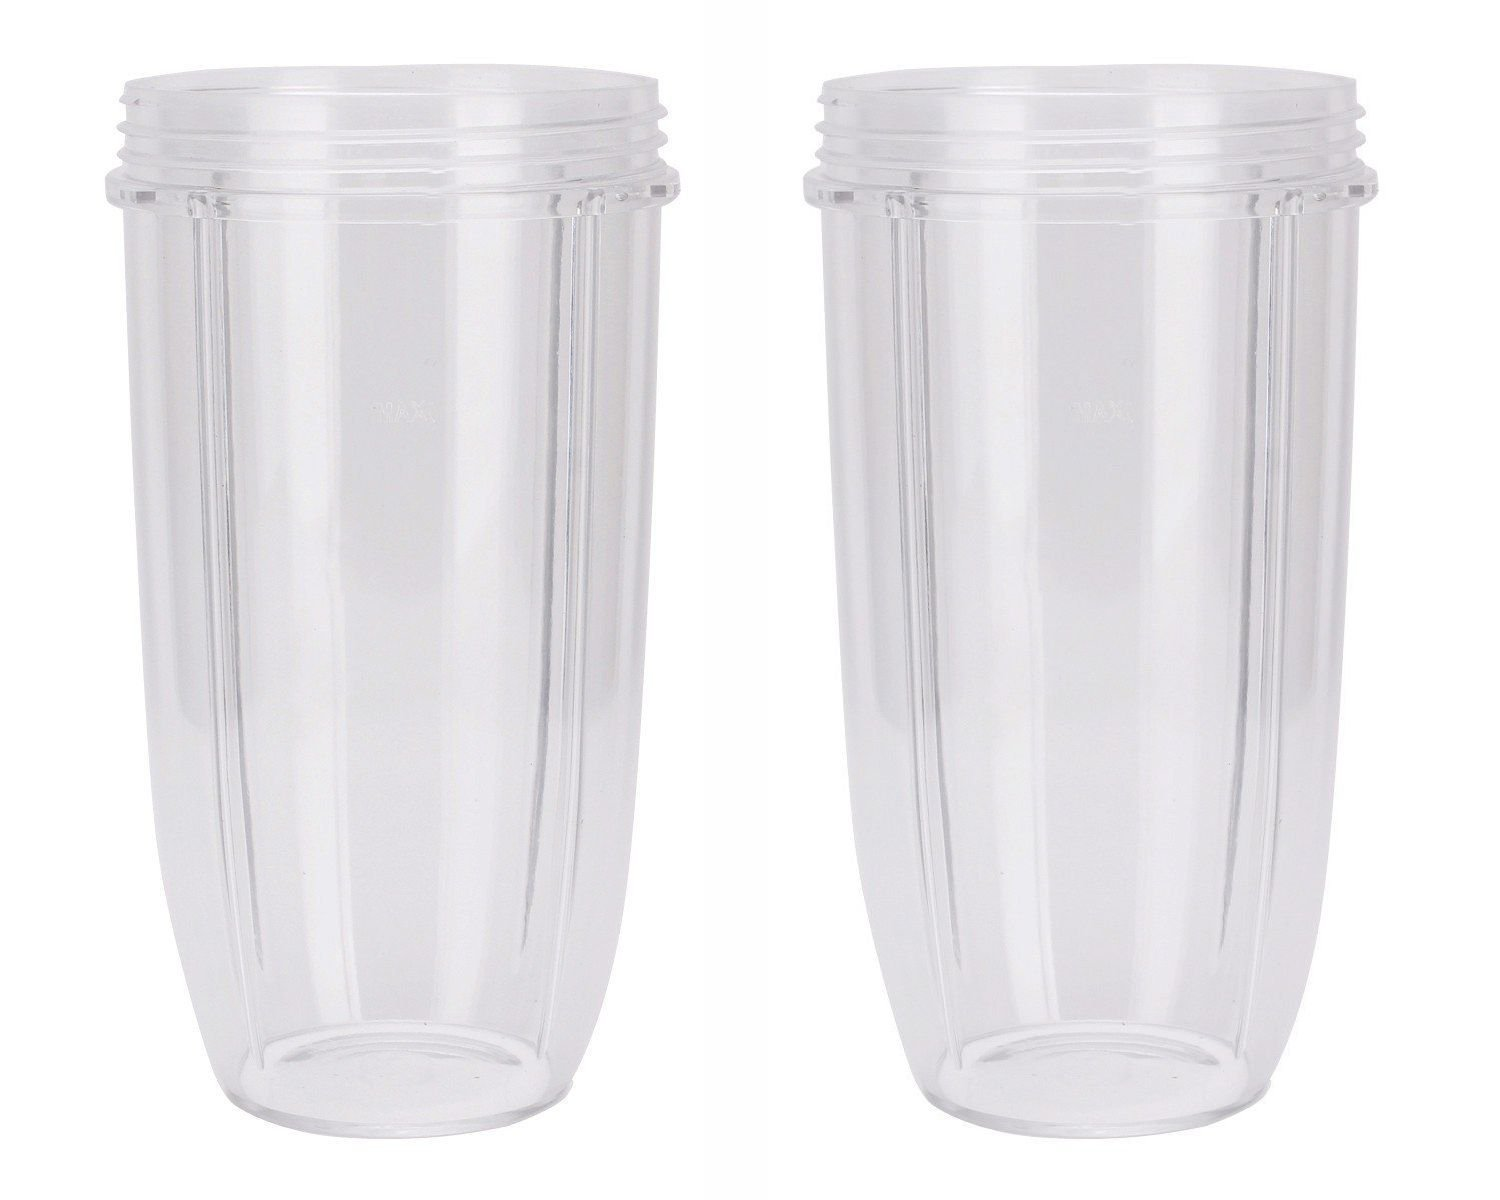 NUTRiBULLET 32-Ounce Cups by NutriGear (Pack of 2)   NutriBullet Replacement Parts & Accessories   Fits NutriBullet 600w and Pro 900w Blender